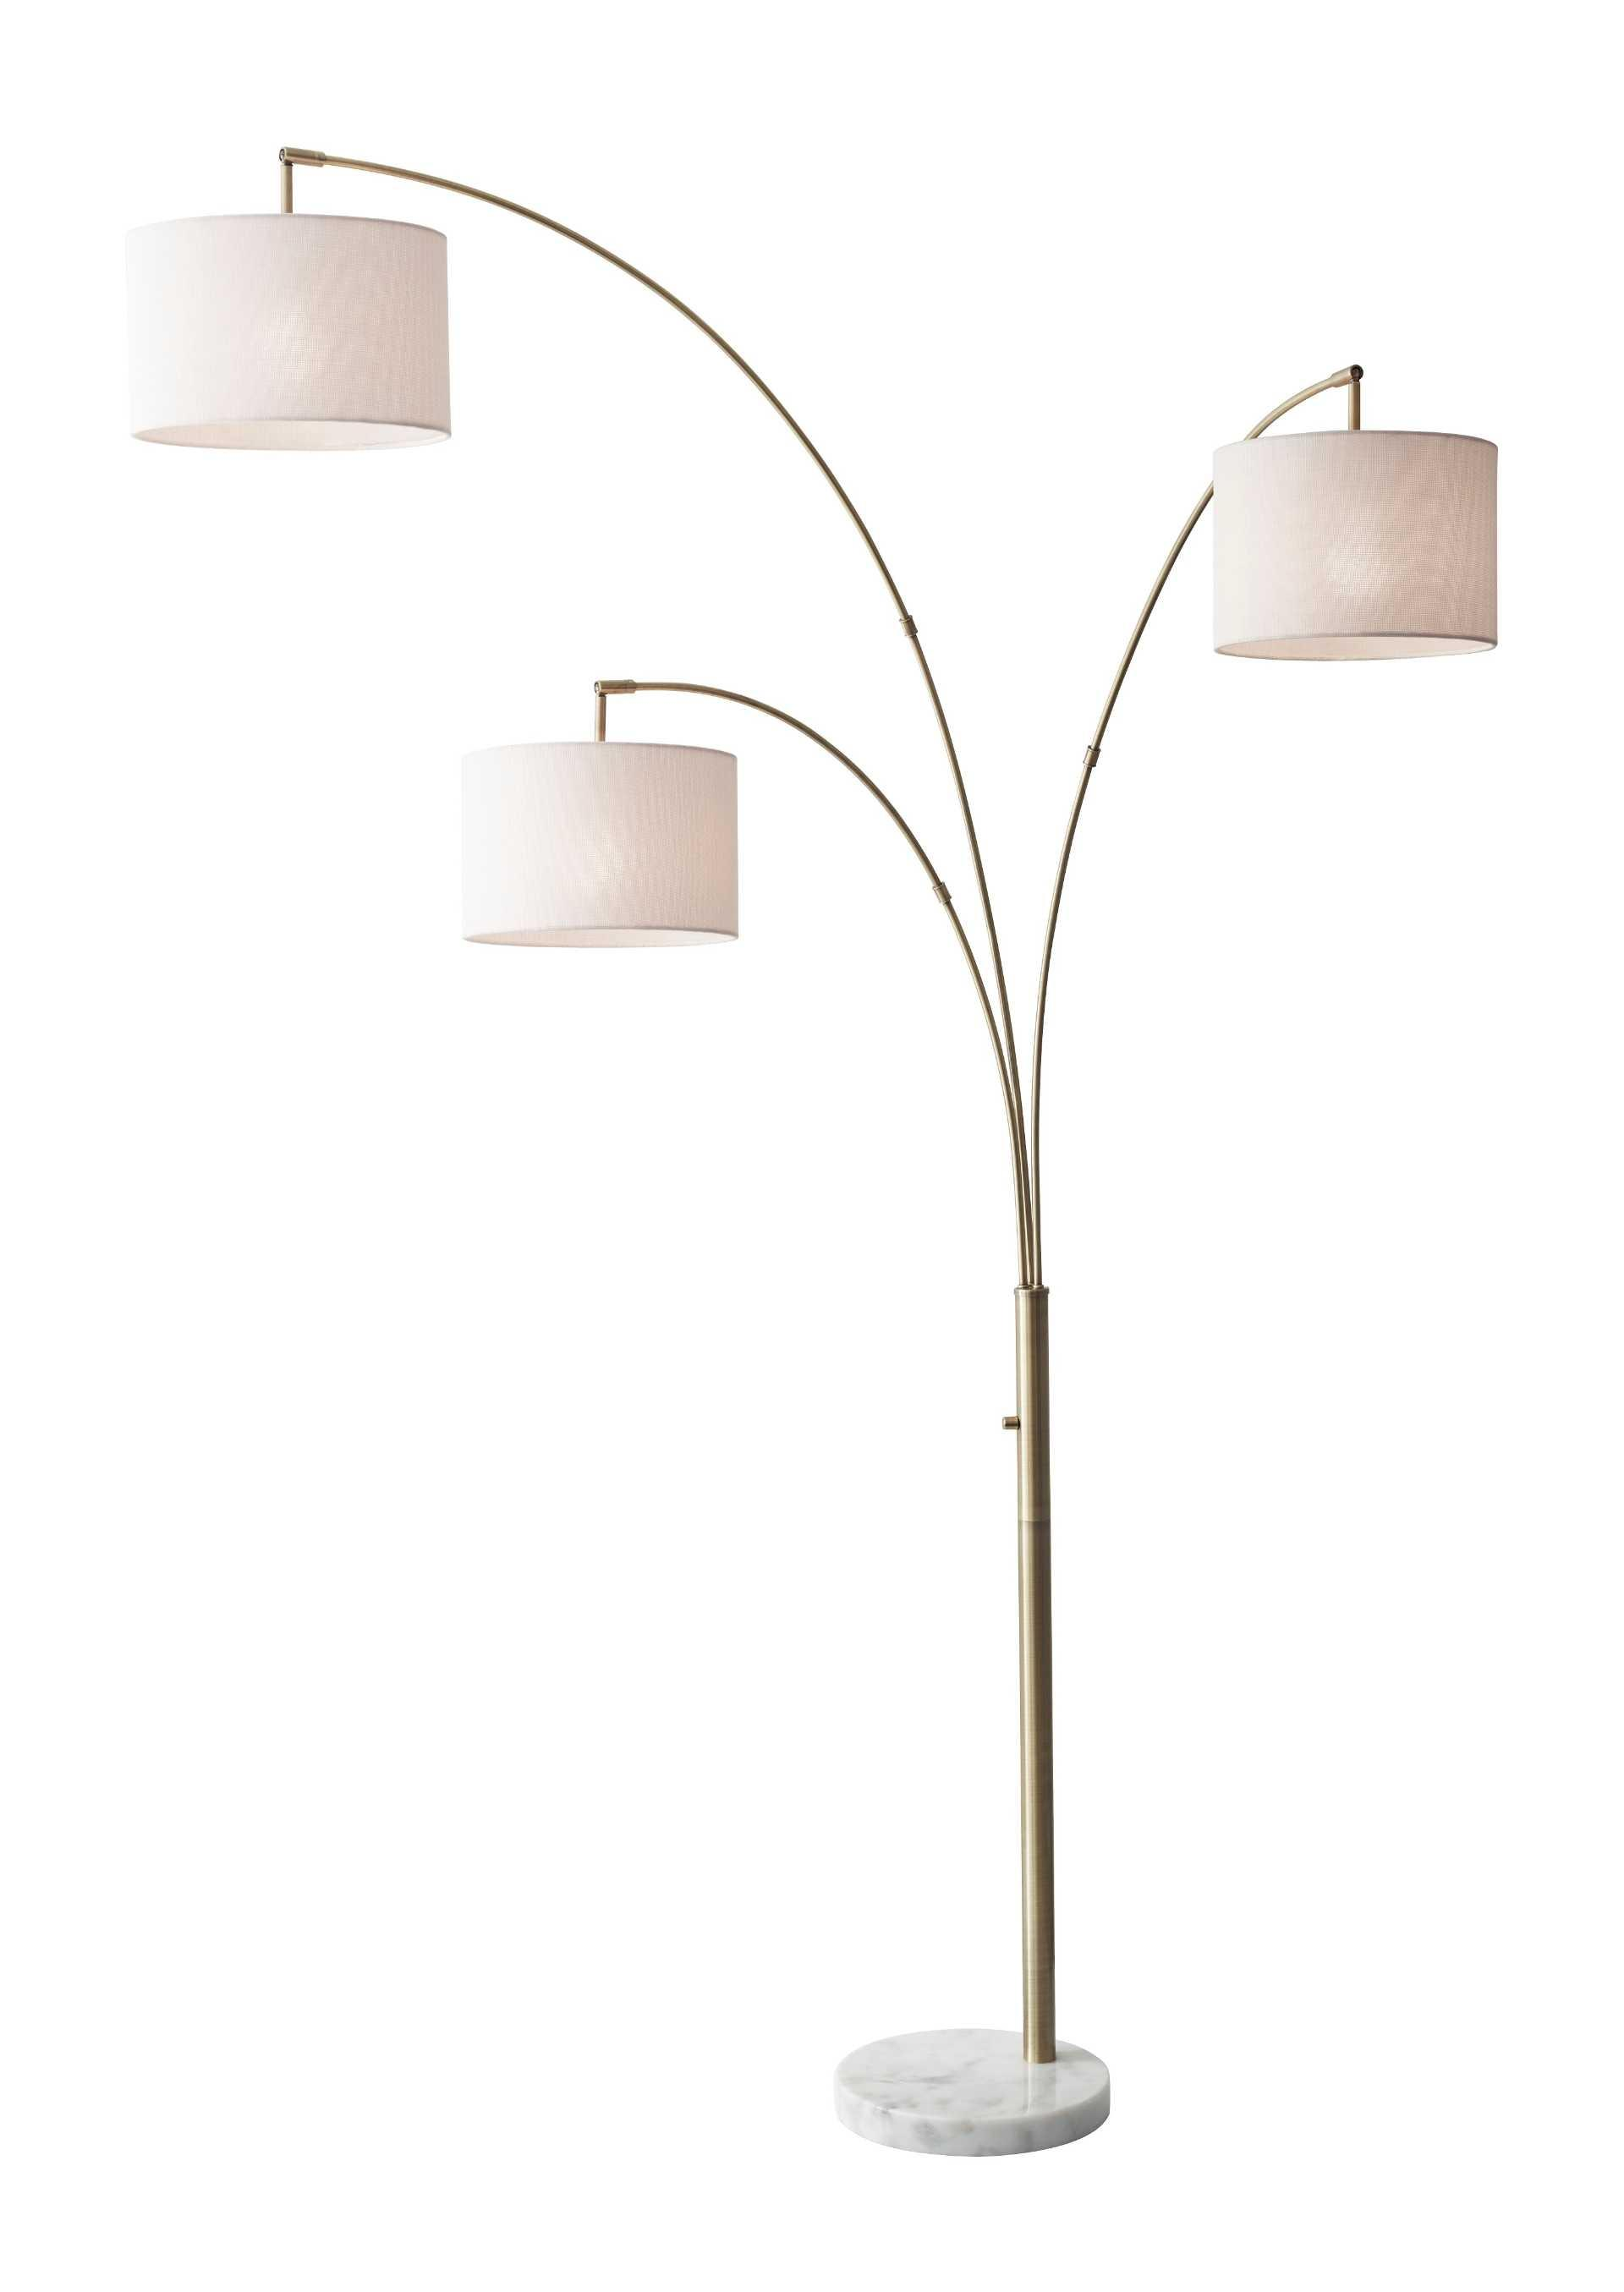 Bowery 3 Arm Arc Floor Lamp By Adesso Home Concepts Furniture